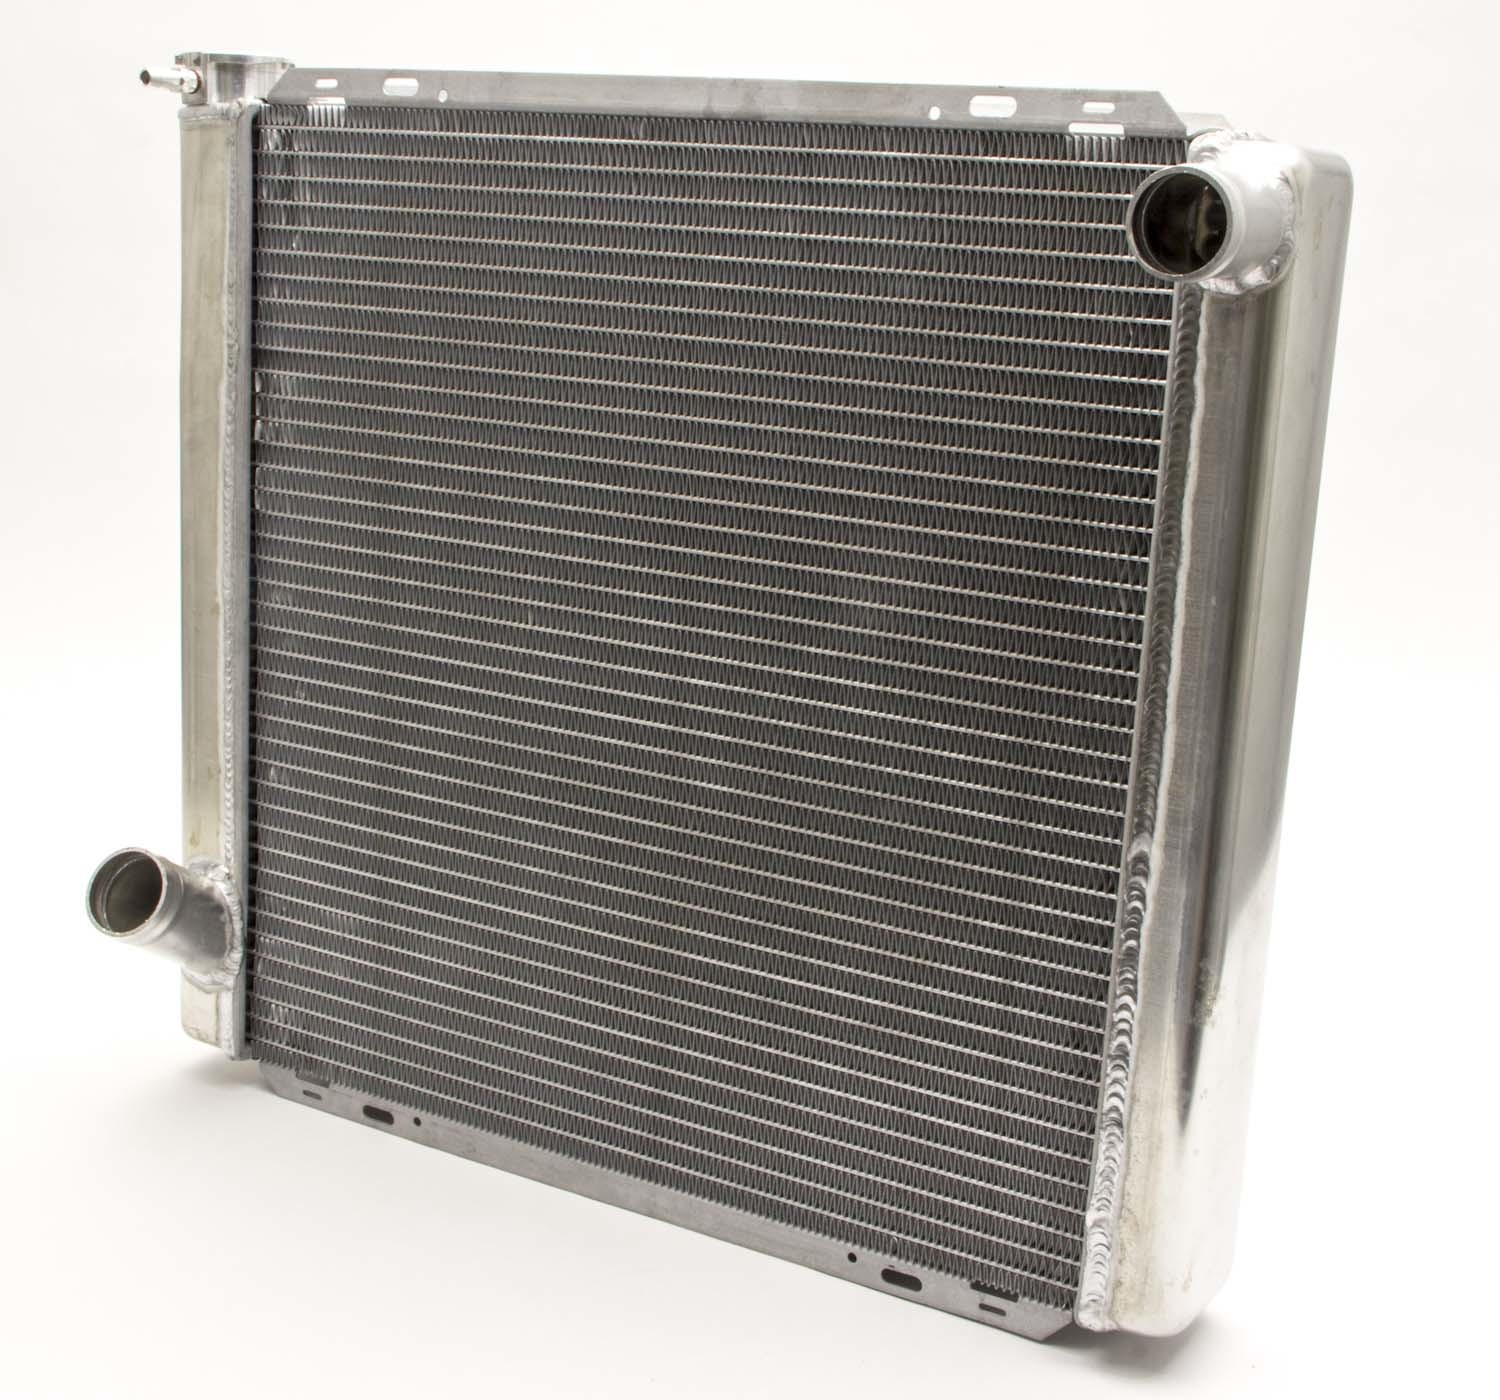 AFCO Racing Products 80100FN Radiator, 22-3/8 in W x 30 in H x 3 in D, Passenger Side Inlet, Driver Side Outlet, Aluminum, Natural, Each